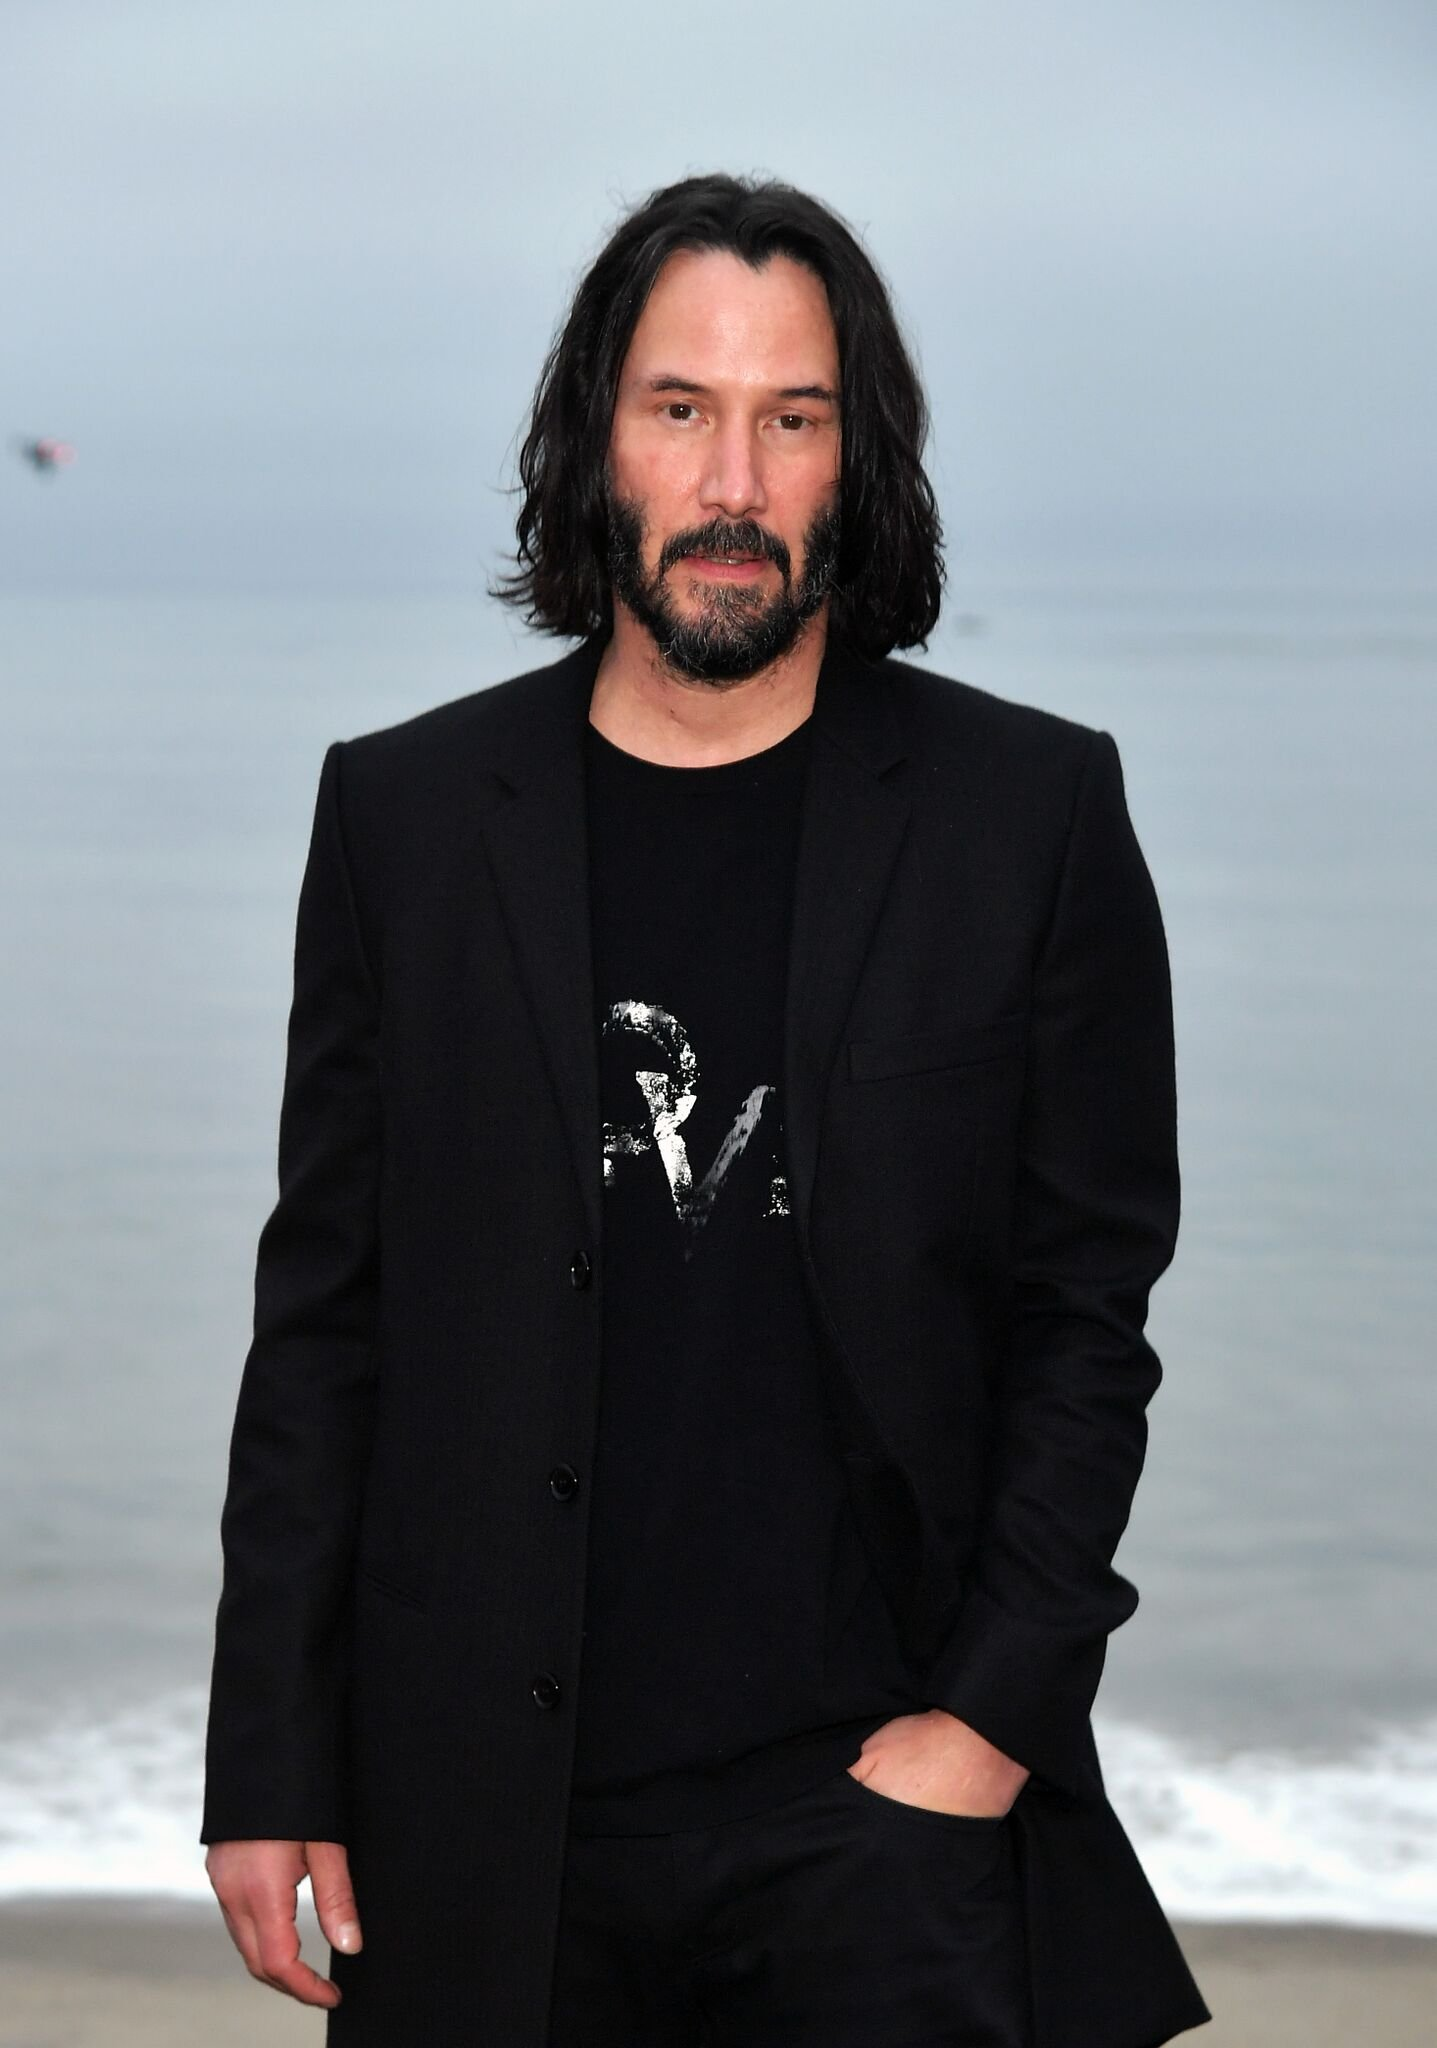 Keanu Reeves at the Saint Laurent Mens Spring Summer 20 Show on June 06, 2019 in Paradise Cove Malibu, California | Photo: Getty Images